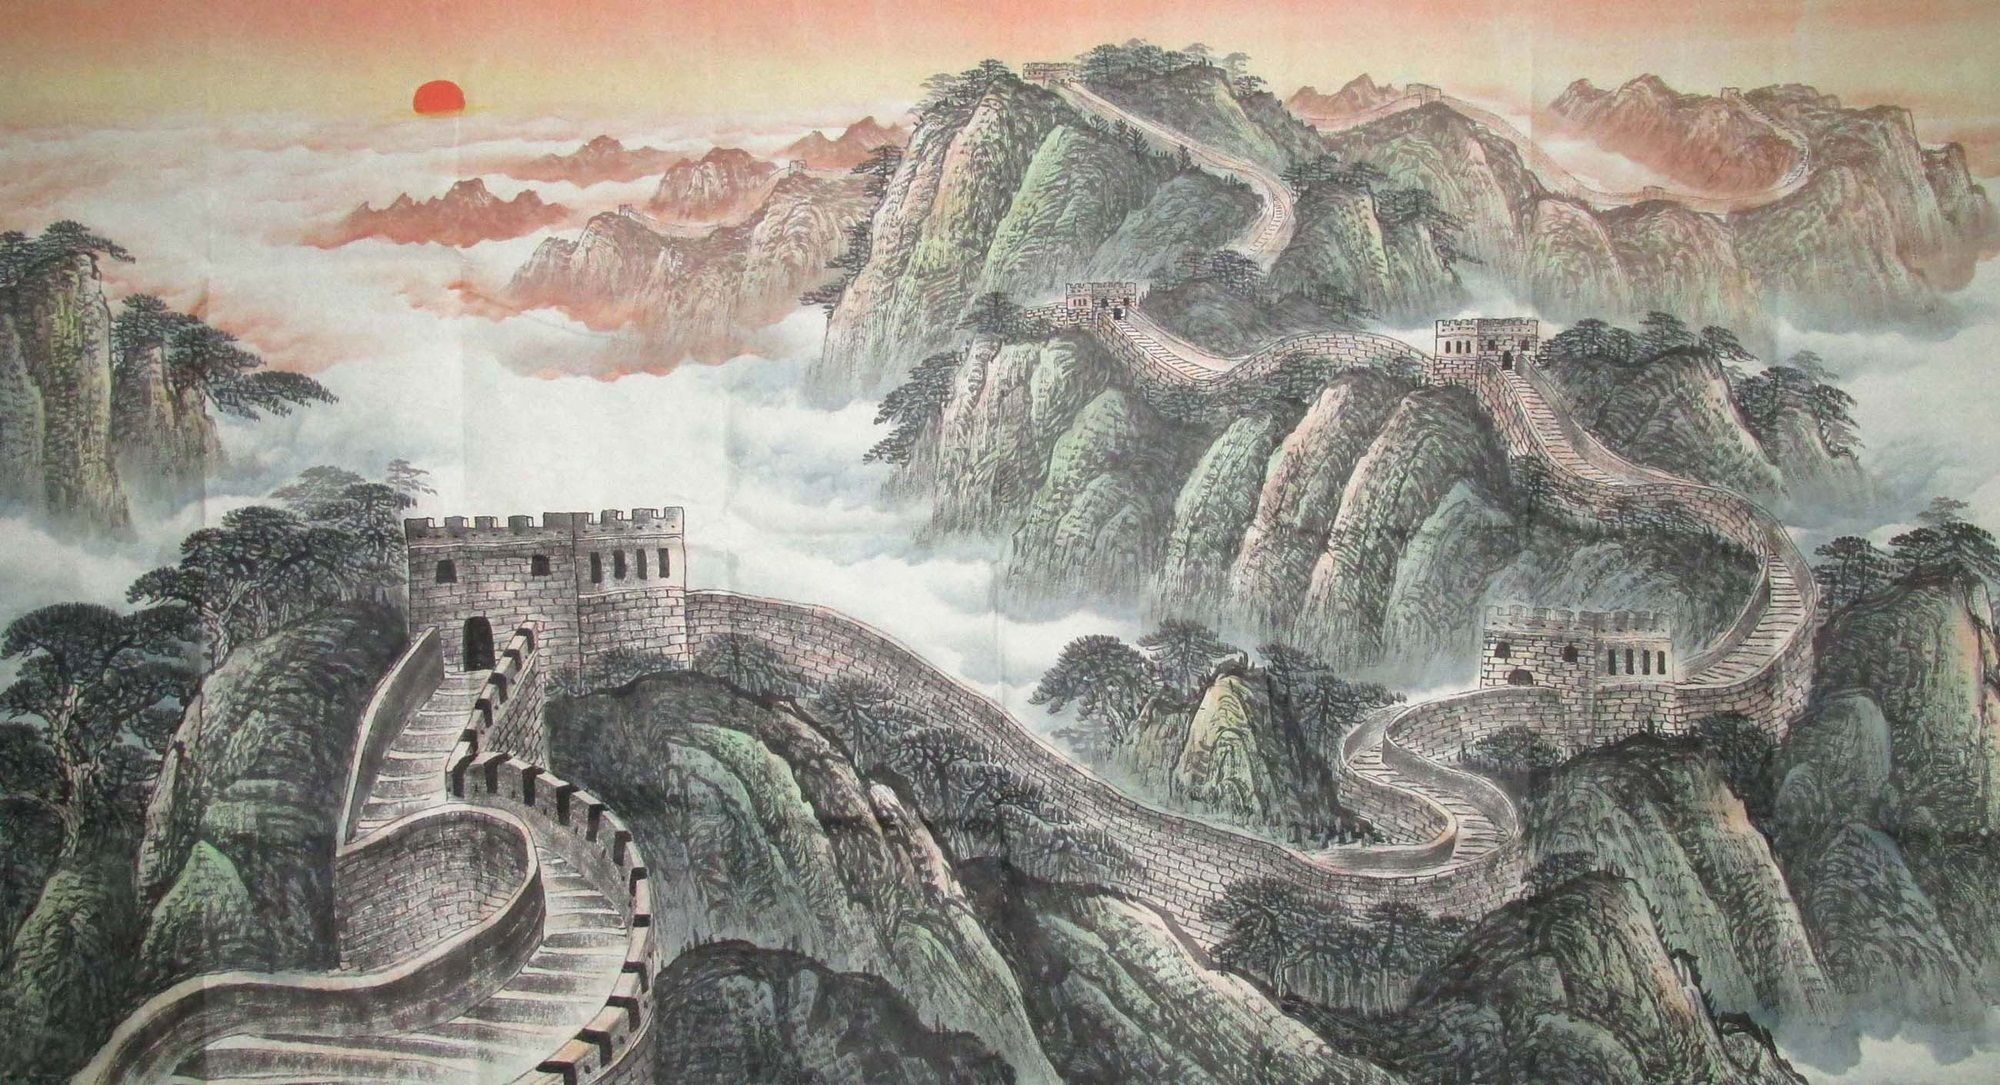 Watercolor art history brush - The Great Wall Landscape Freehand Brush Work Chinese Ink Painting